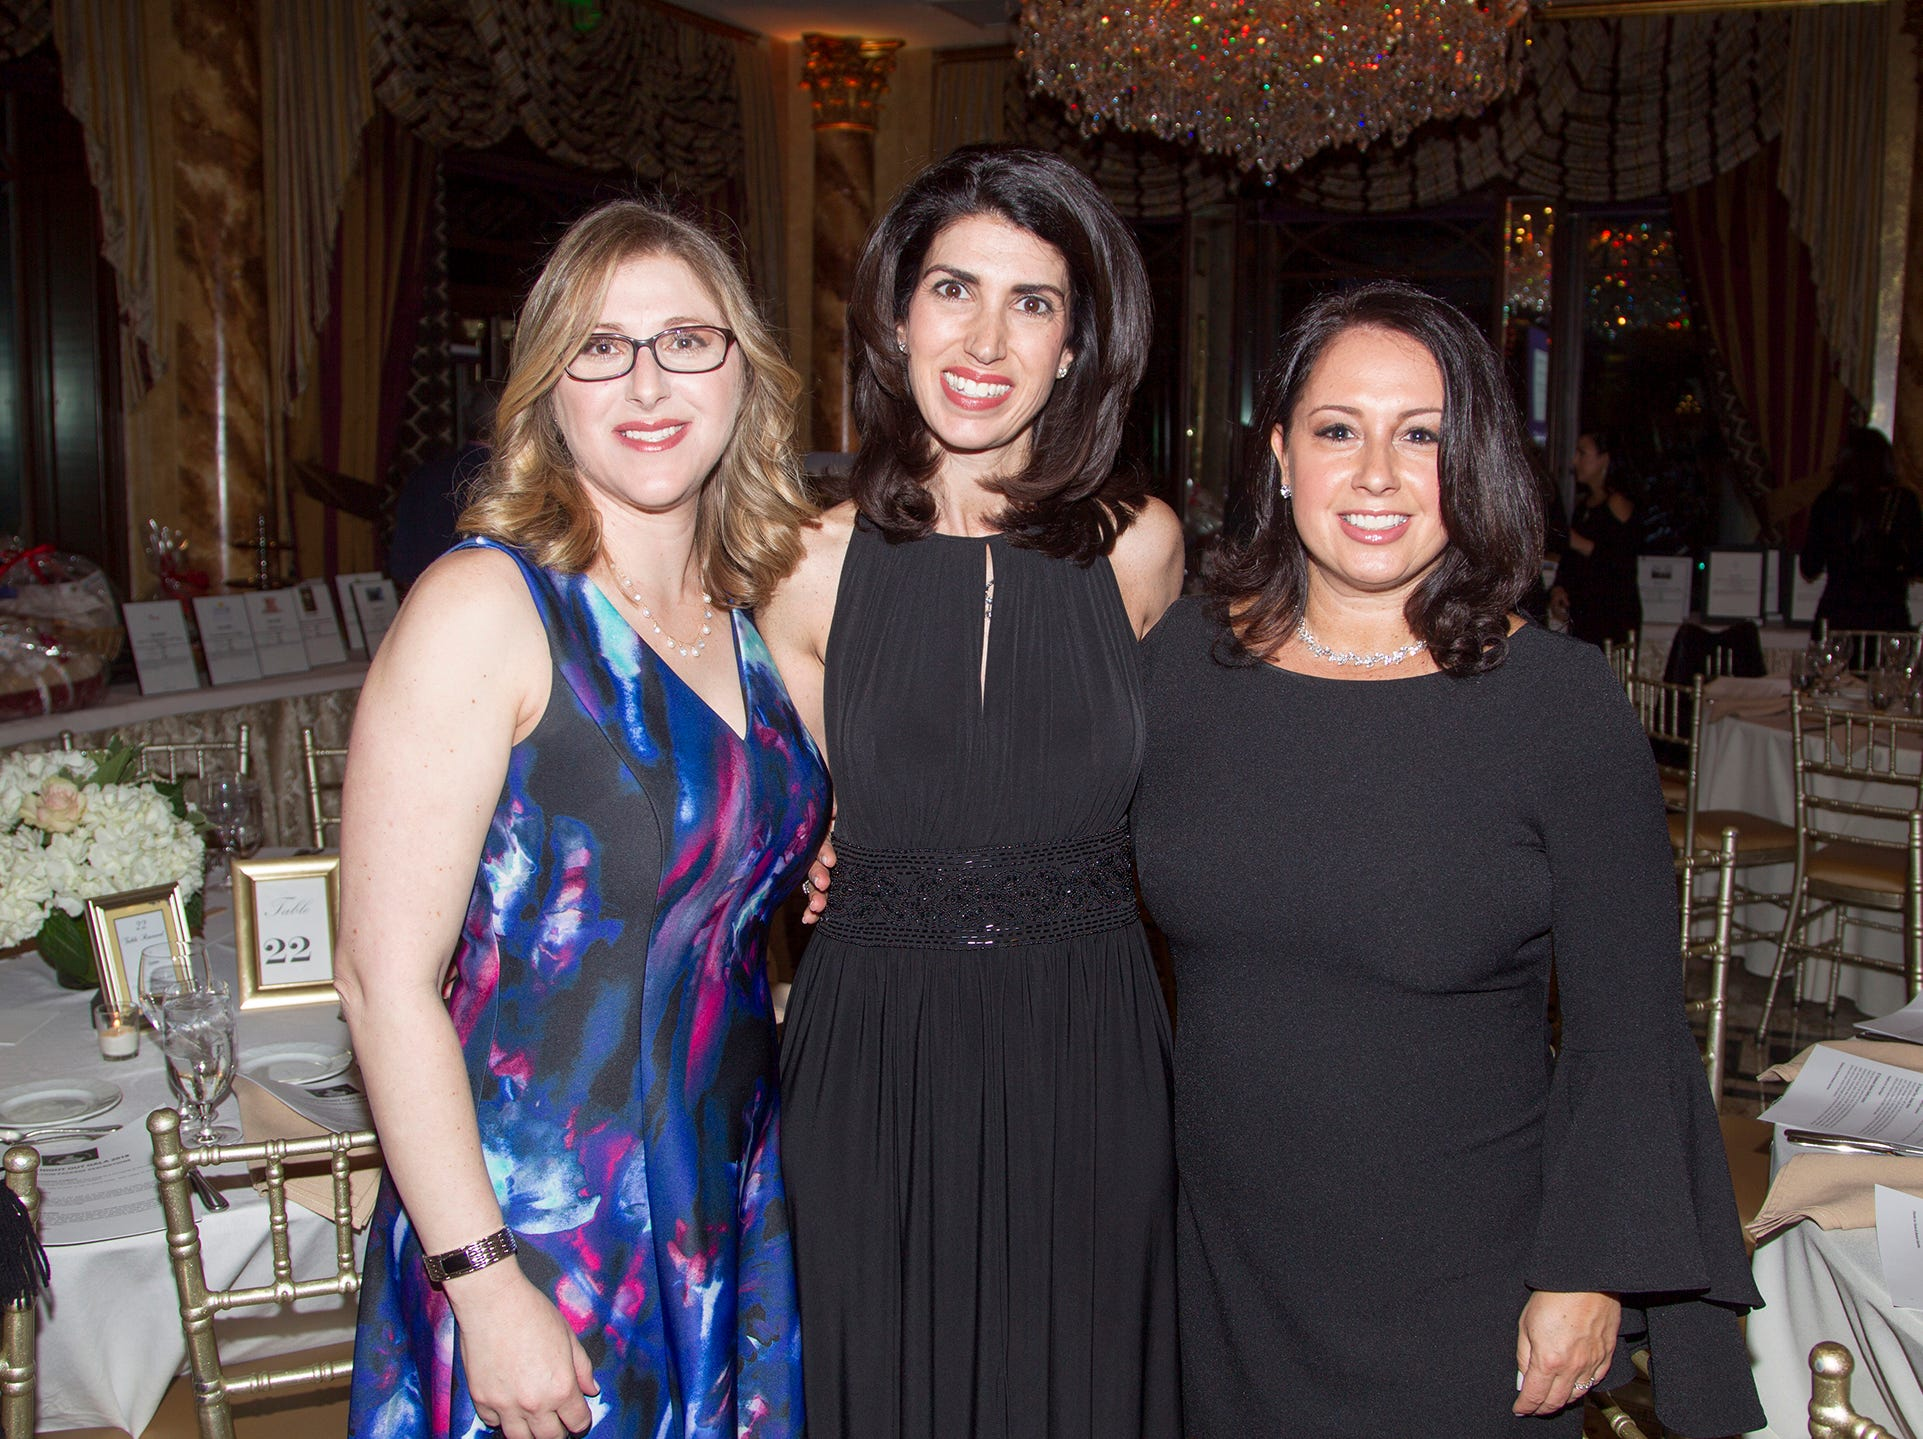 Susan Fein, Karen Mueller, Stacy Ceslowitz. Upper Saddle River Education Foundation hosted its Town Night Out Gala at Seasons in Washington Twp. 04/06/2019